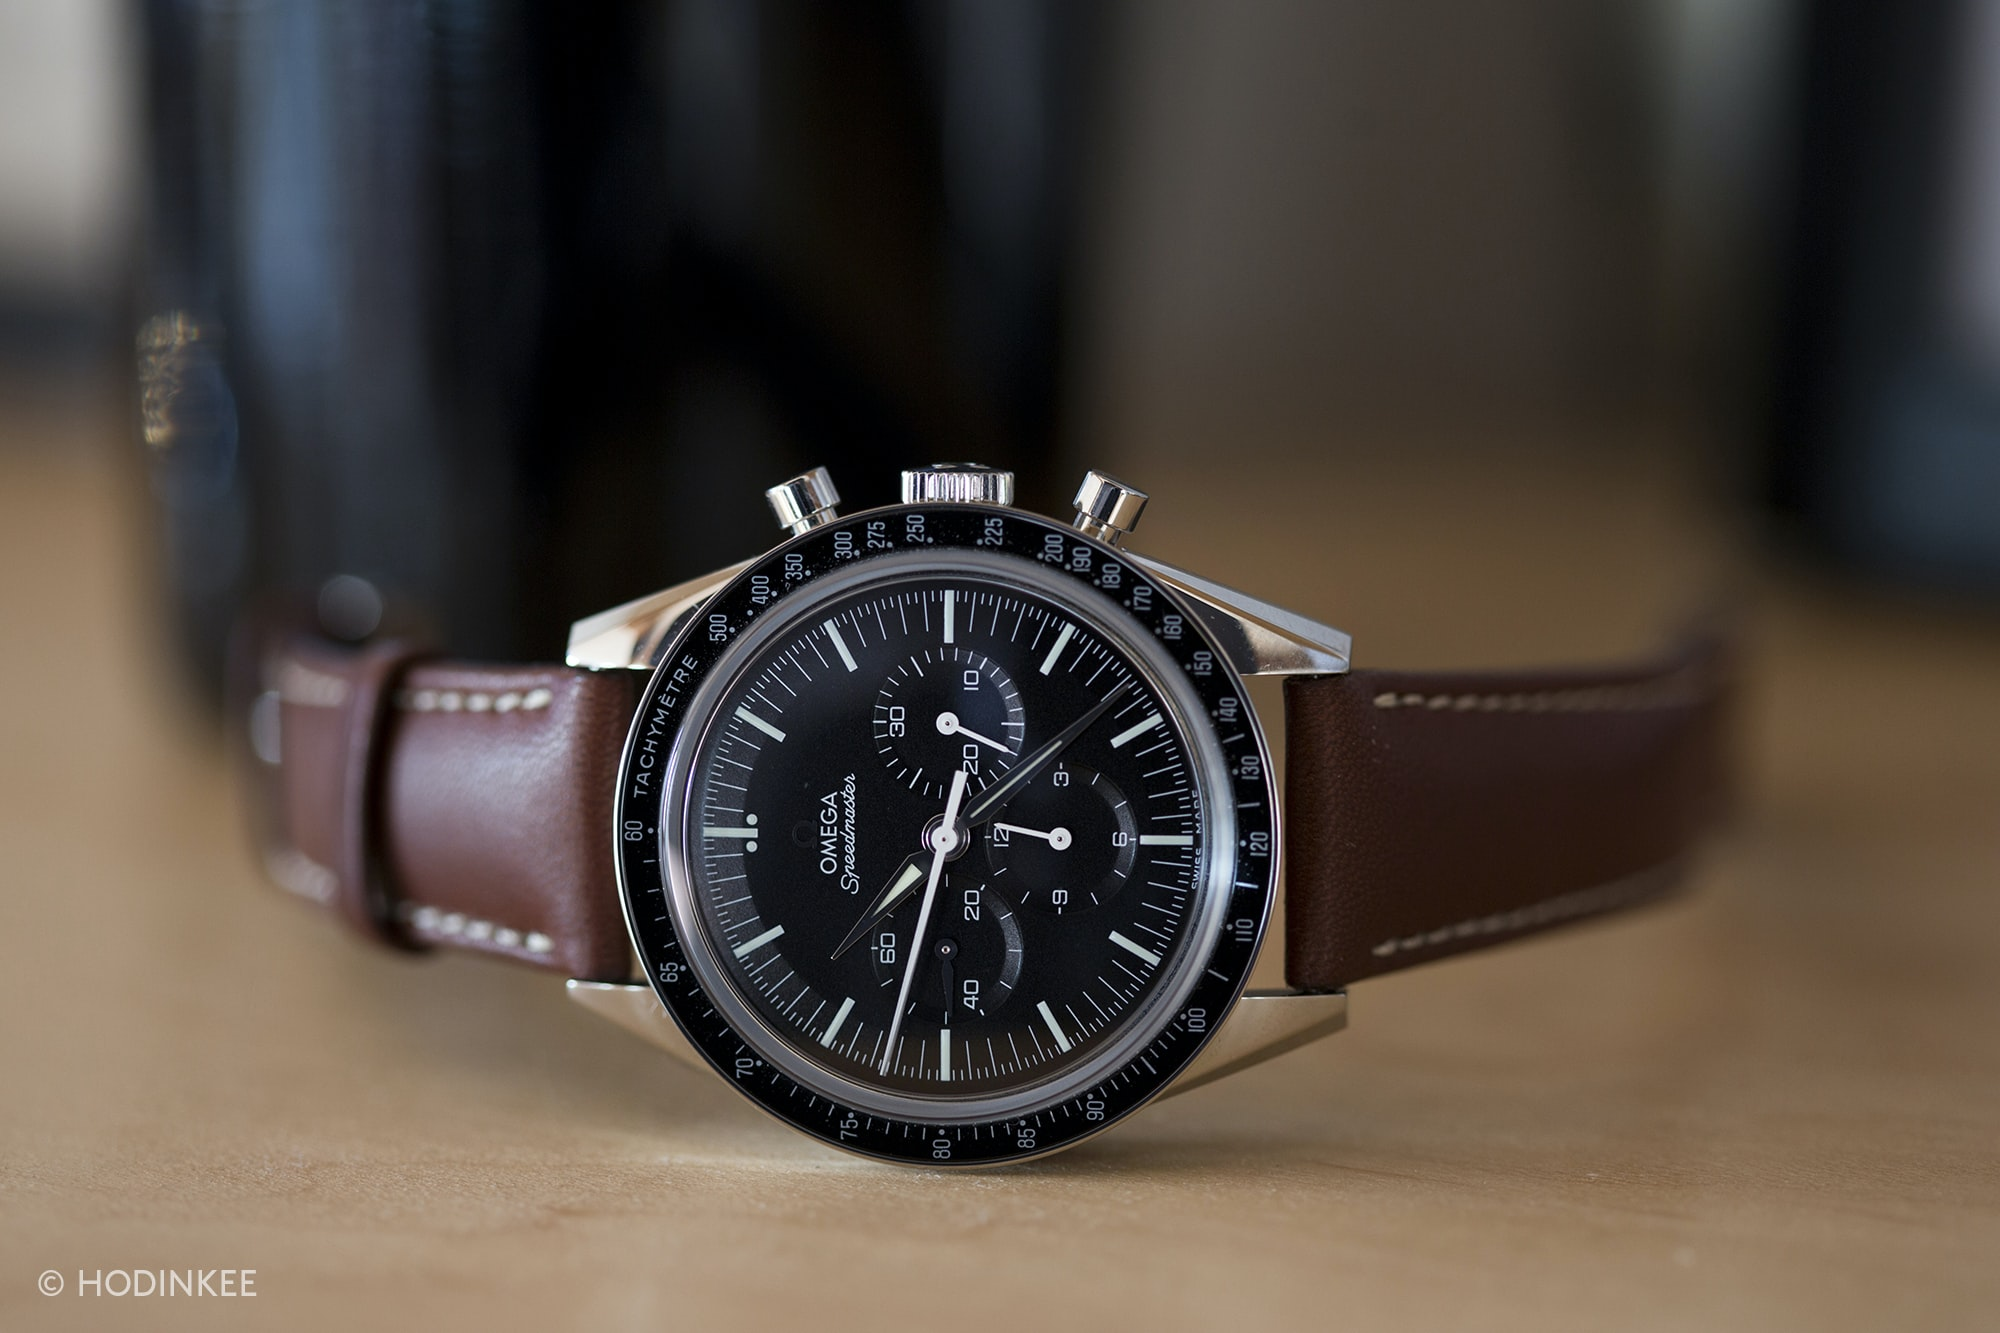 Omega Speedmaster First Omega In Space Review A Week On The Wrist: The Omega Speedmaster 'First Omega In Space' A Week On The Wrist: The Omega Speedmaster 'First Omega In Space' 588A0172 copy